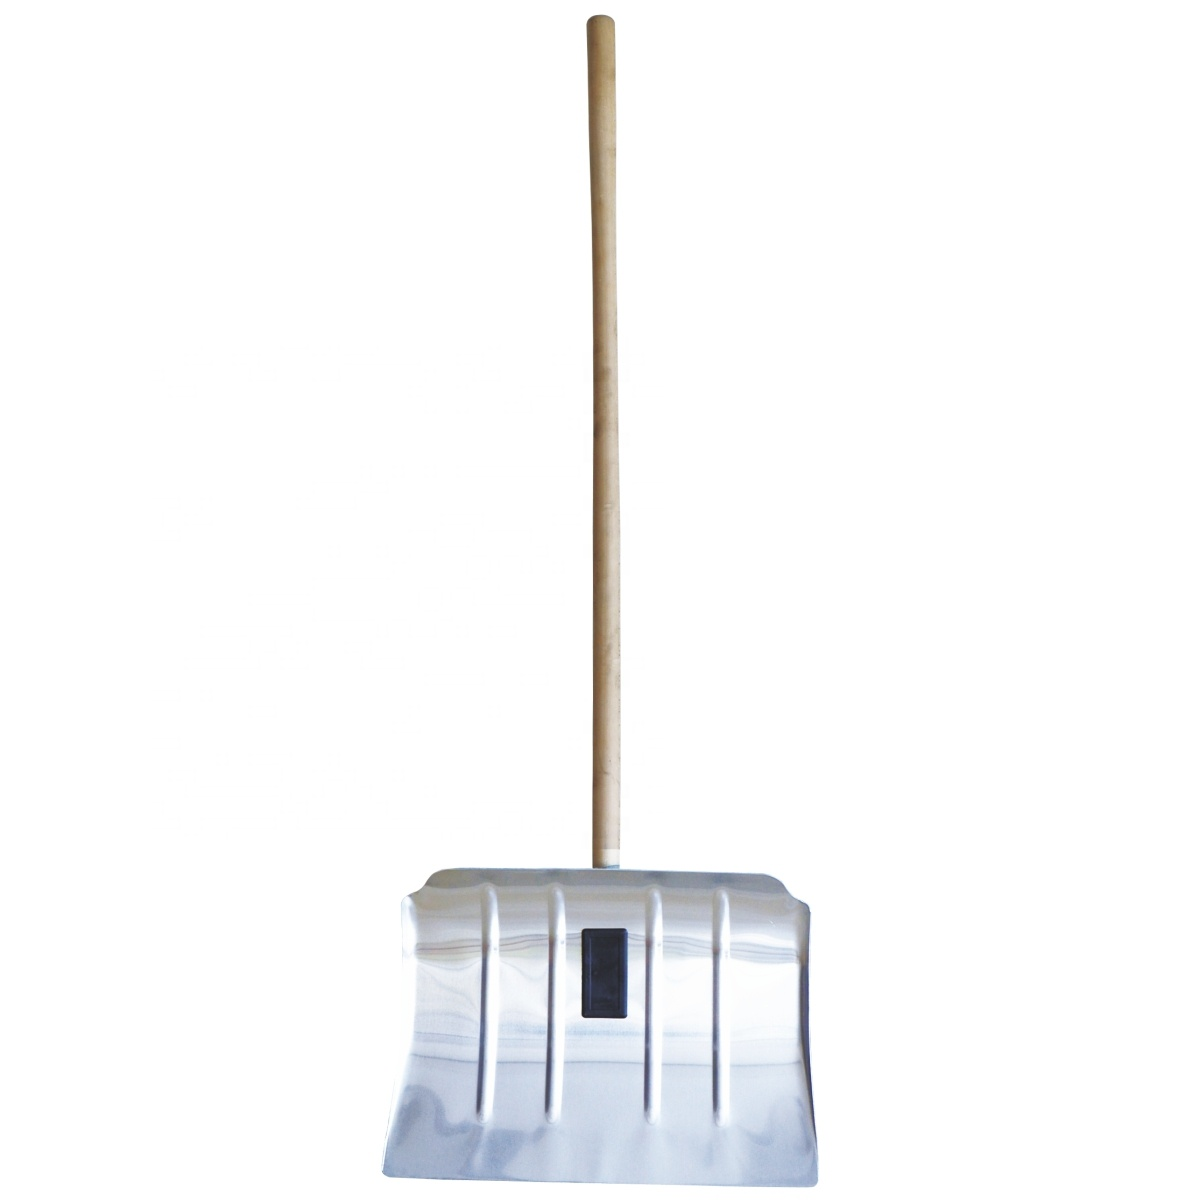 602 shovel remove snow removal tool